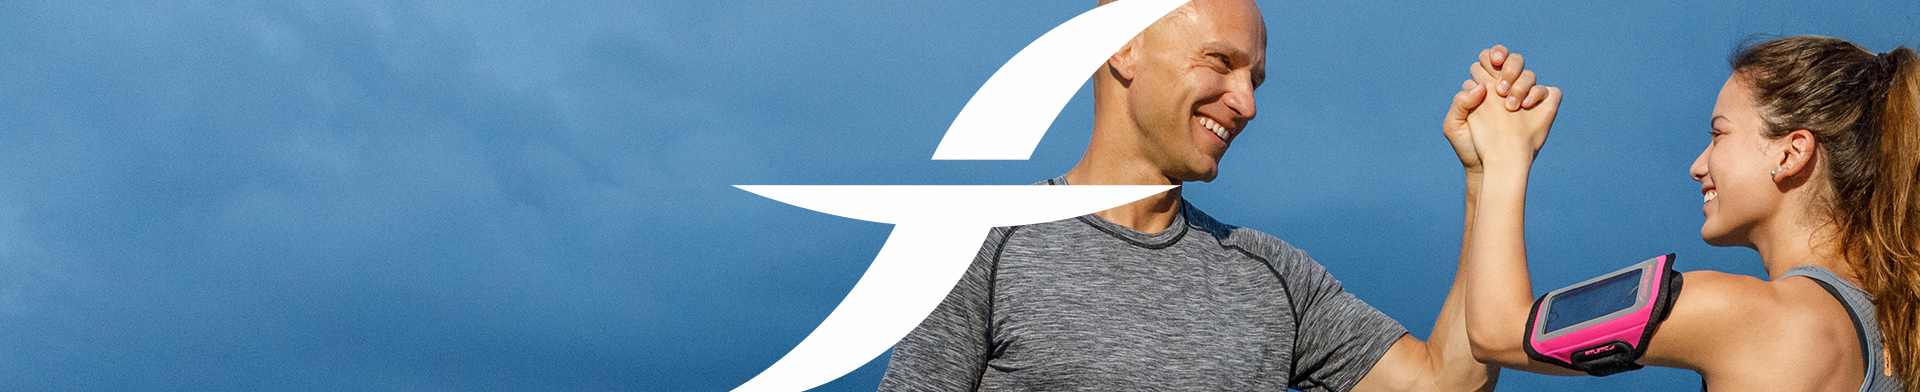 fitletic banner